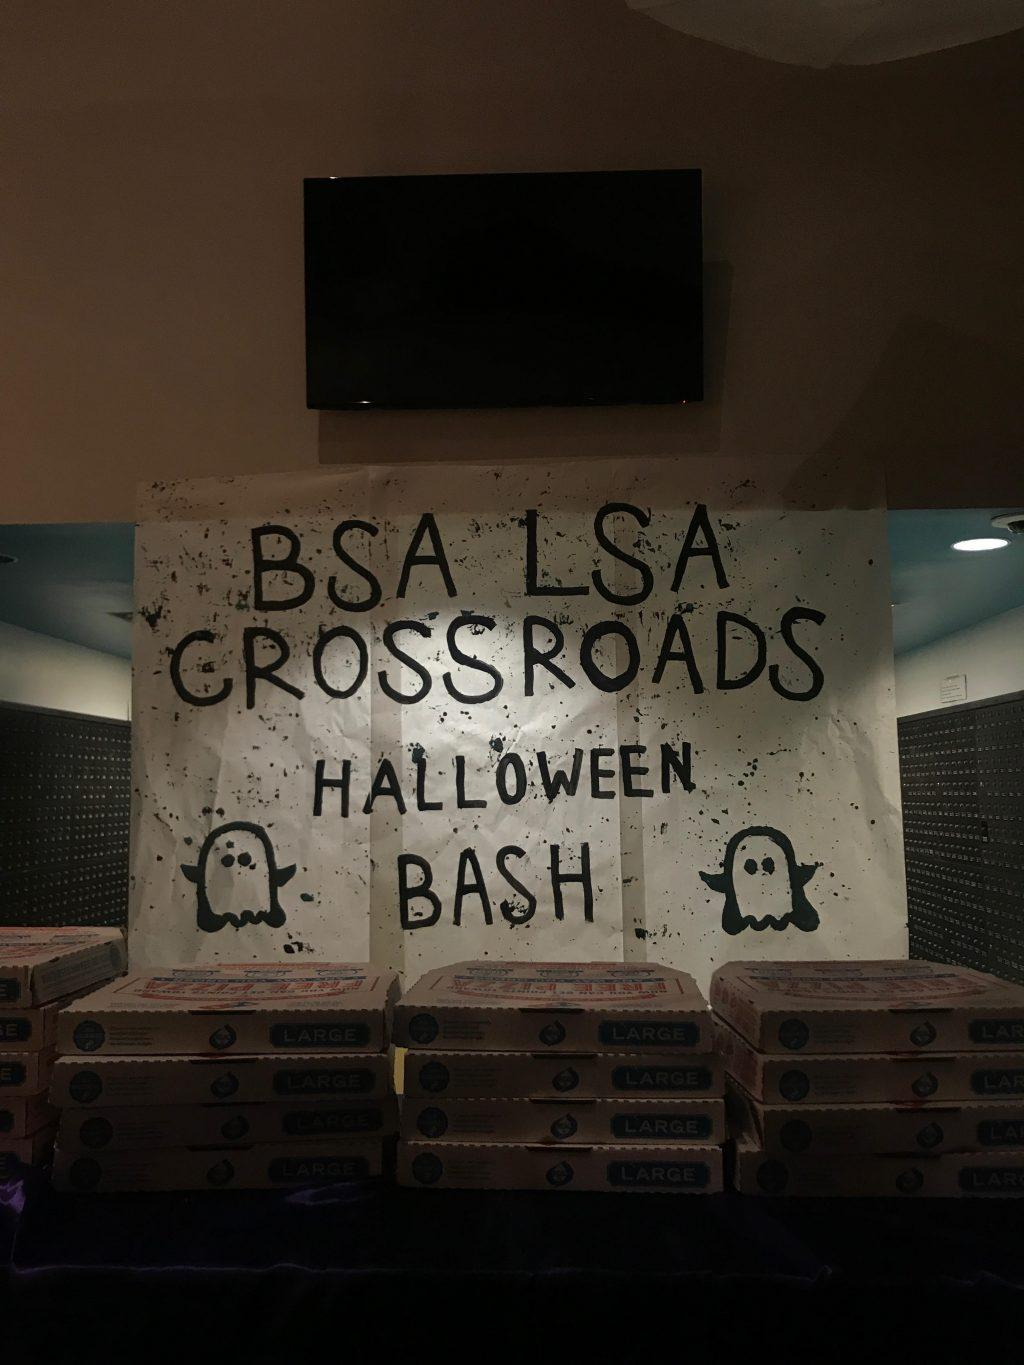 The Latino/a/x Student Association partnered with the Black Student Association and Crossroads for a Halloween Bash last October at the Sandbar on the Malibu Campus. Club members came together for pizza and dancing to celebrate Halloween. Photo courtesy of Isabella Mendoza